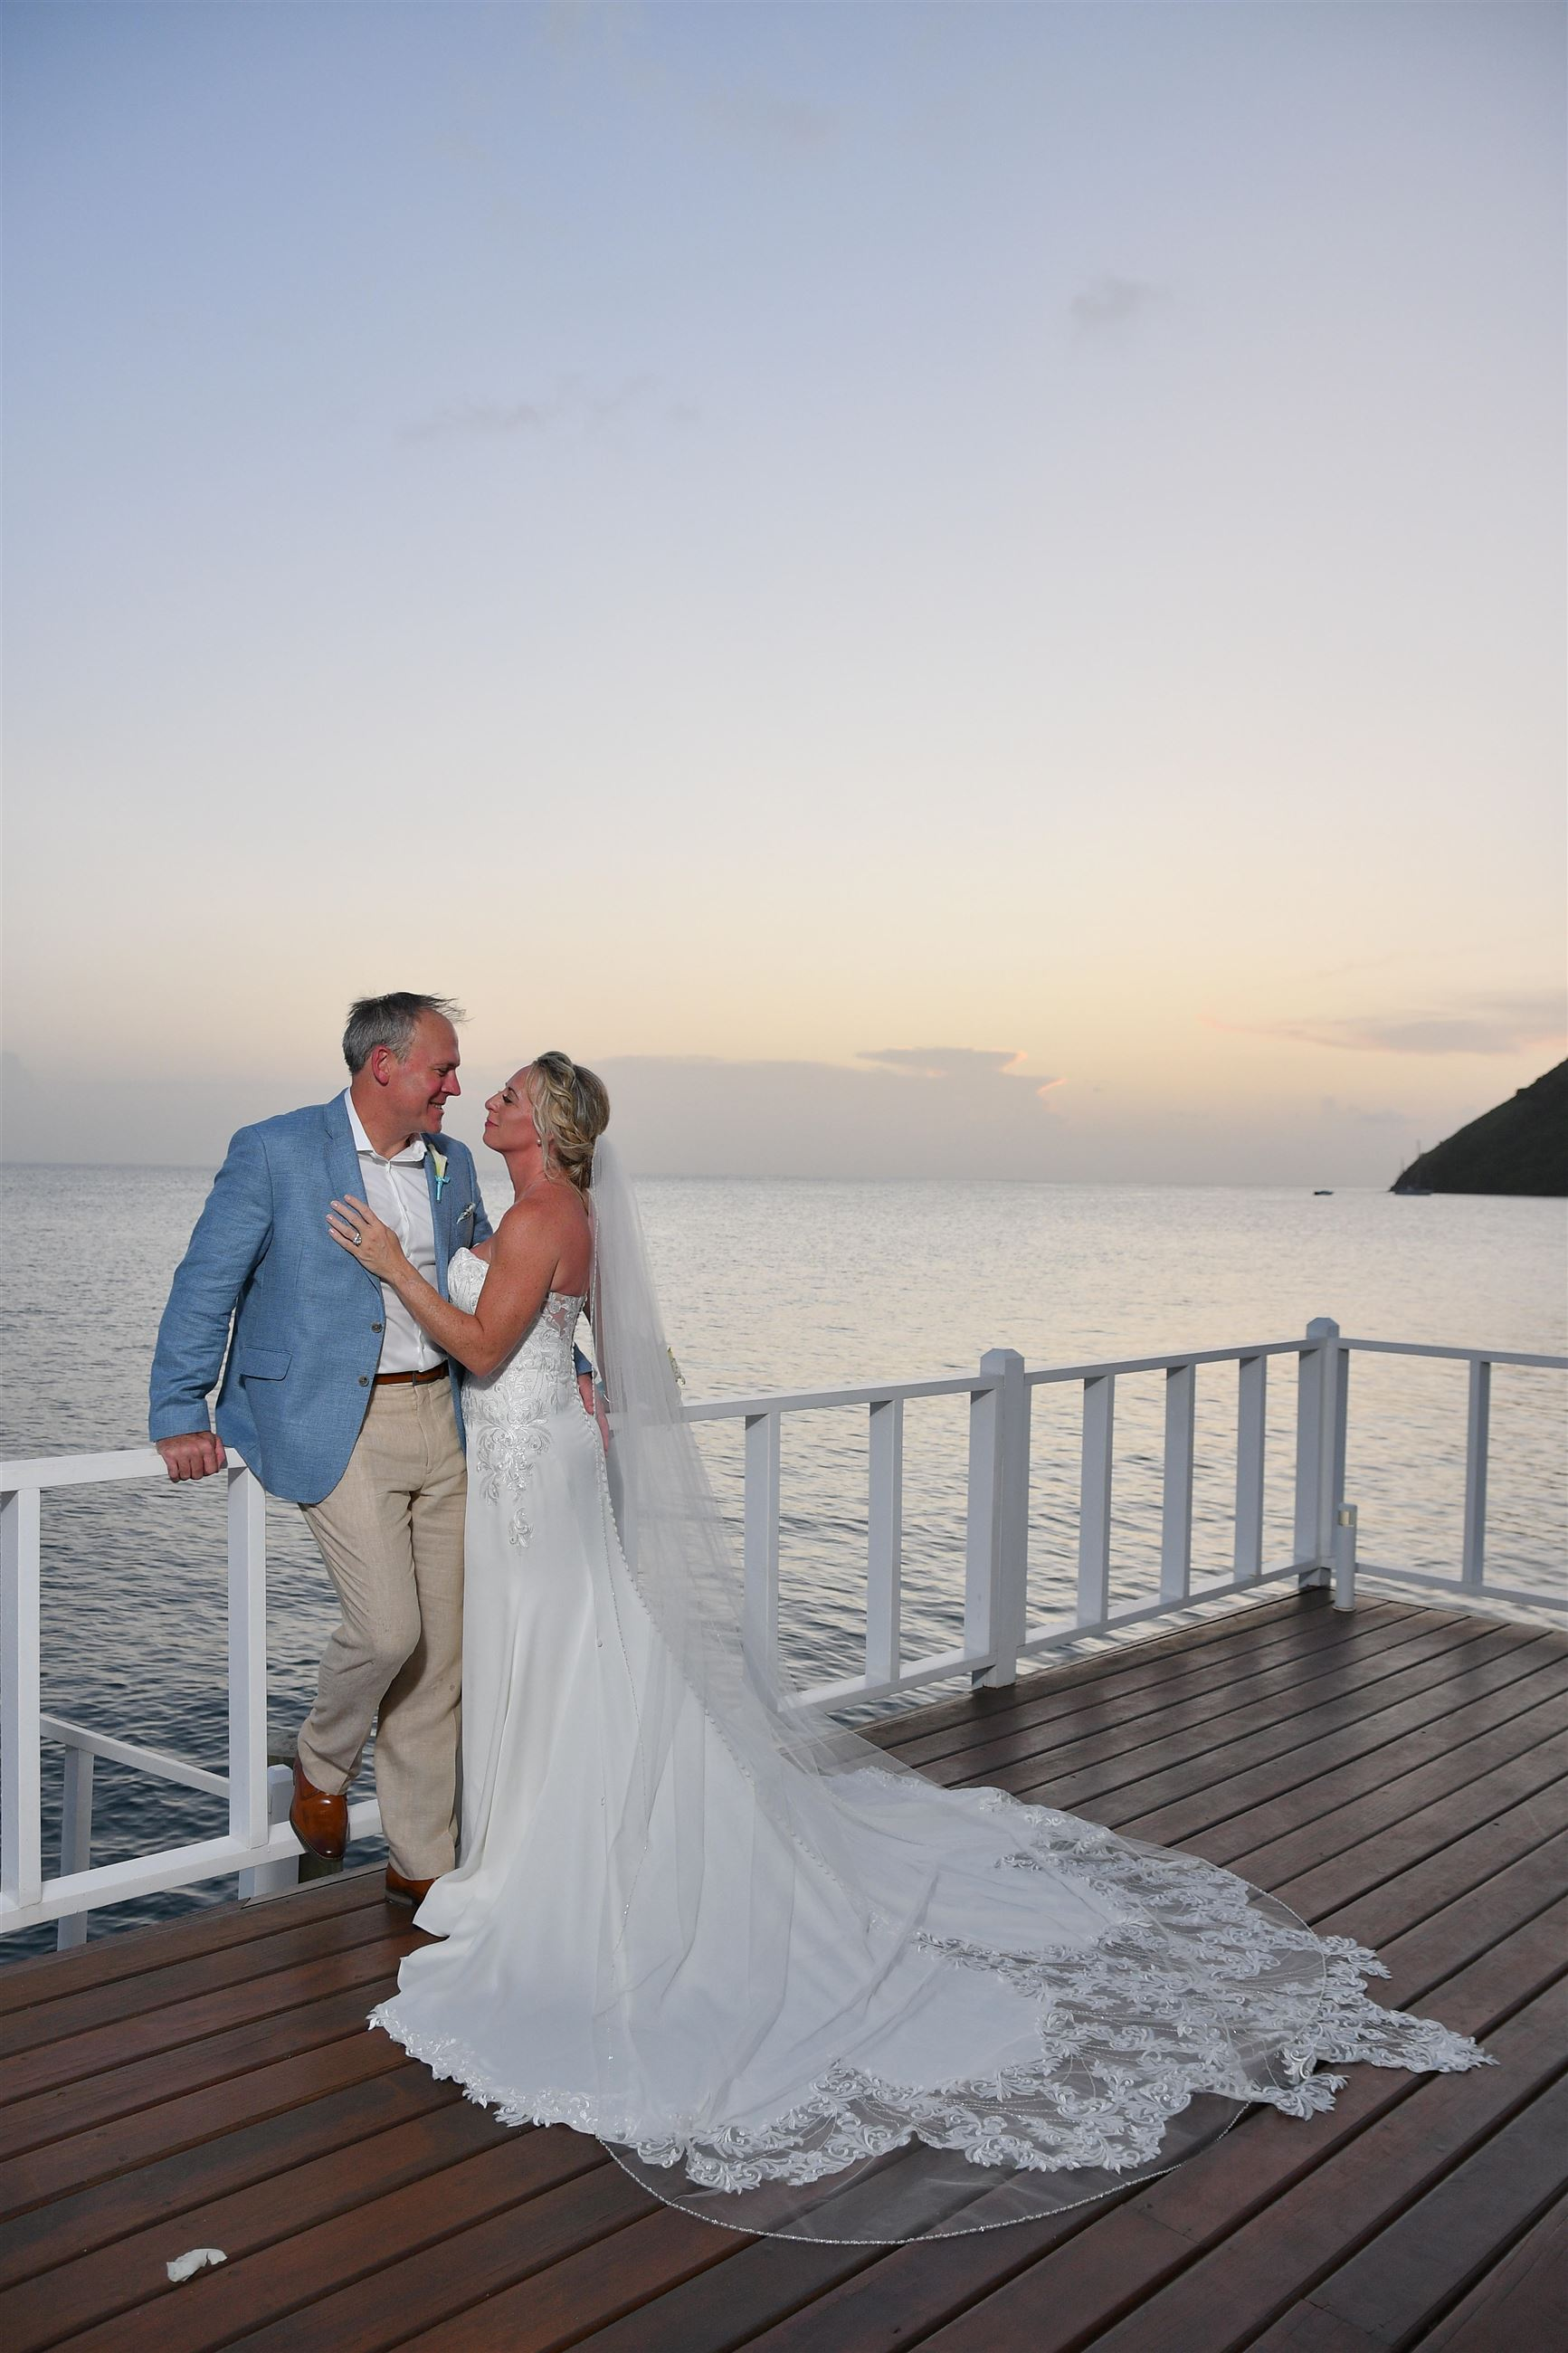 Essense of Australia, D2597, St Lucia Wedding, Bel Fiore Bride